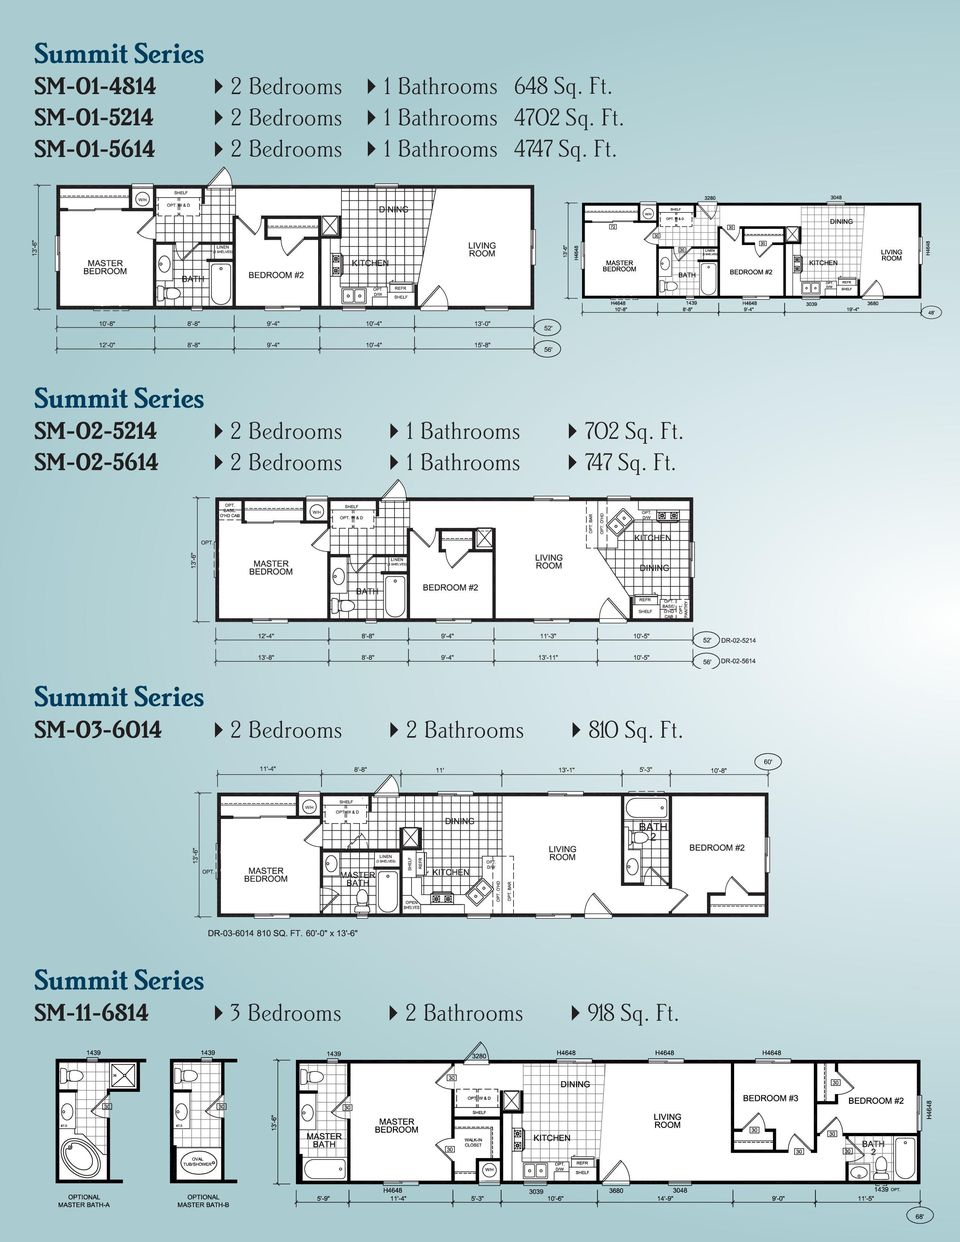 SM-01-5614 42 Bedrooms 41 Bathrooms 4747 Sq. Ft.